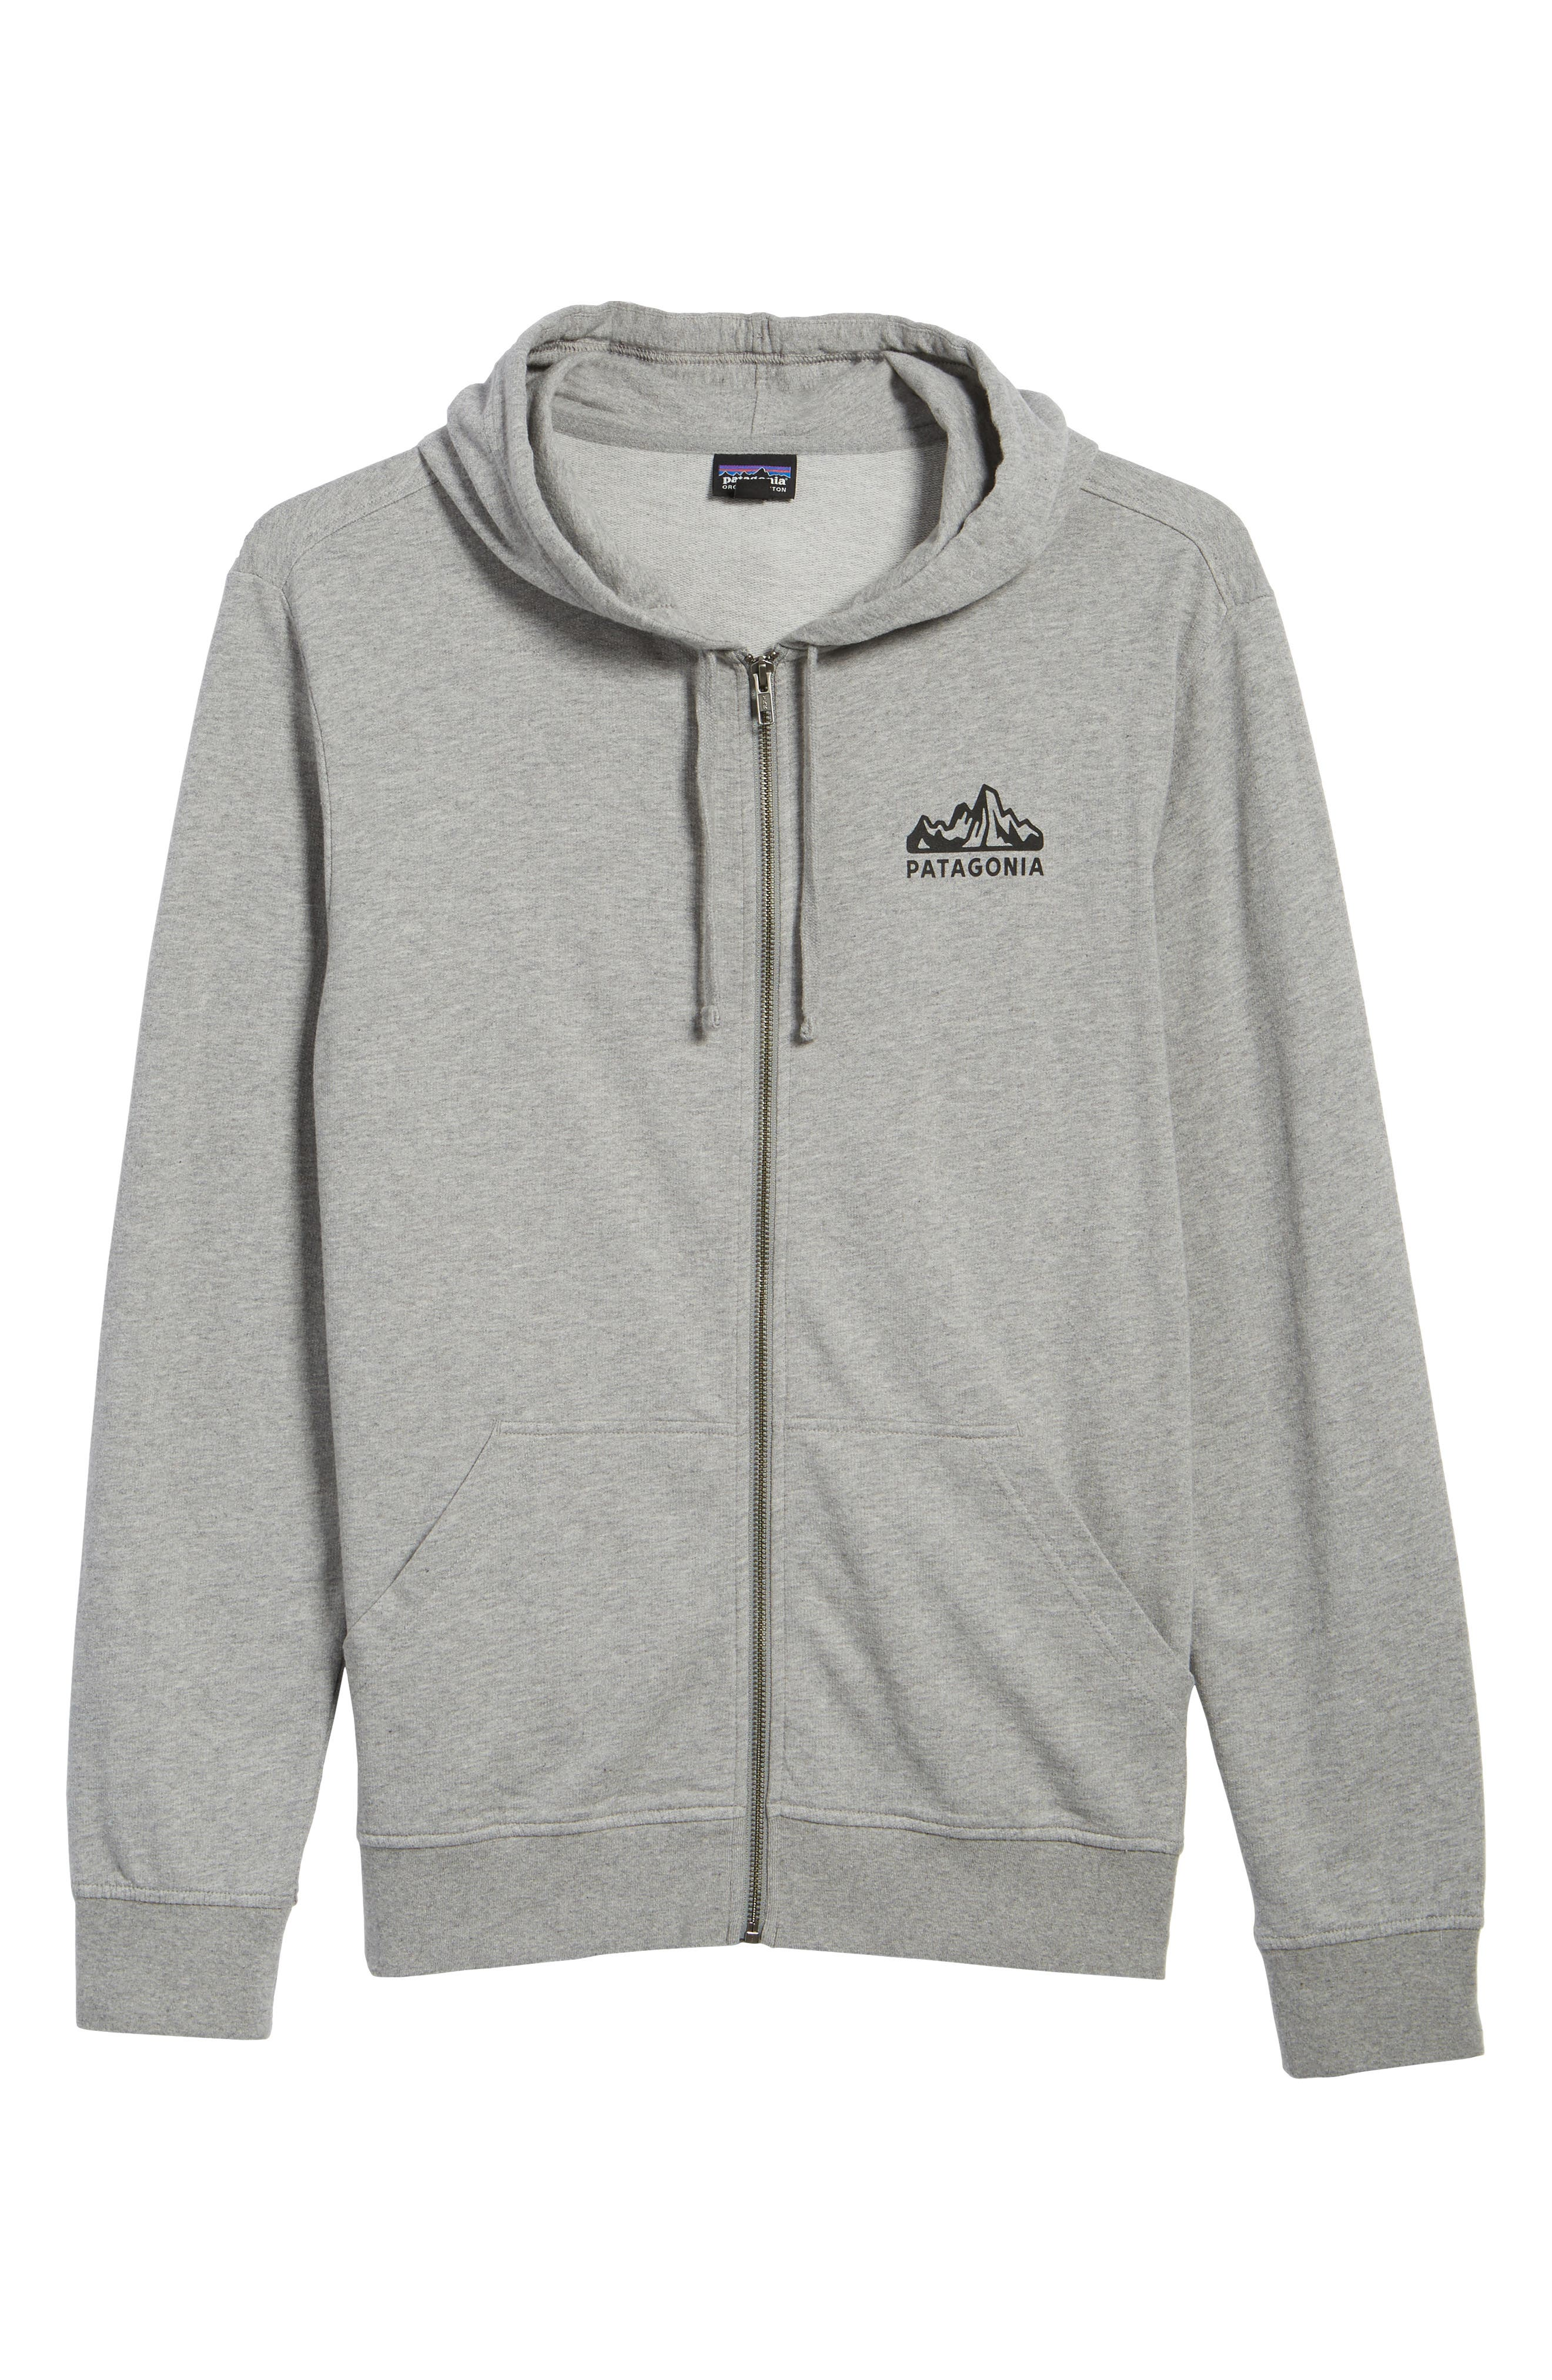 Fitz Roy Frostbite PolyCycle<sup>®</sup> Full Zip Hoodie,                             Alternate thumbnail 6, color,                             Feather Grey